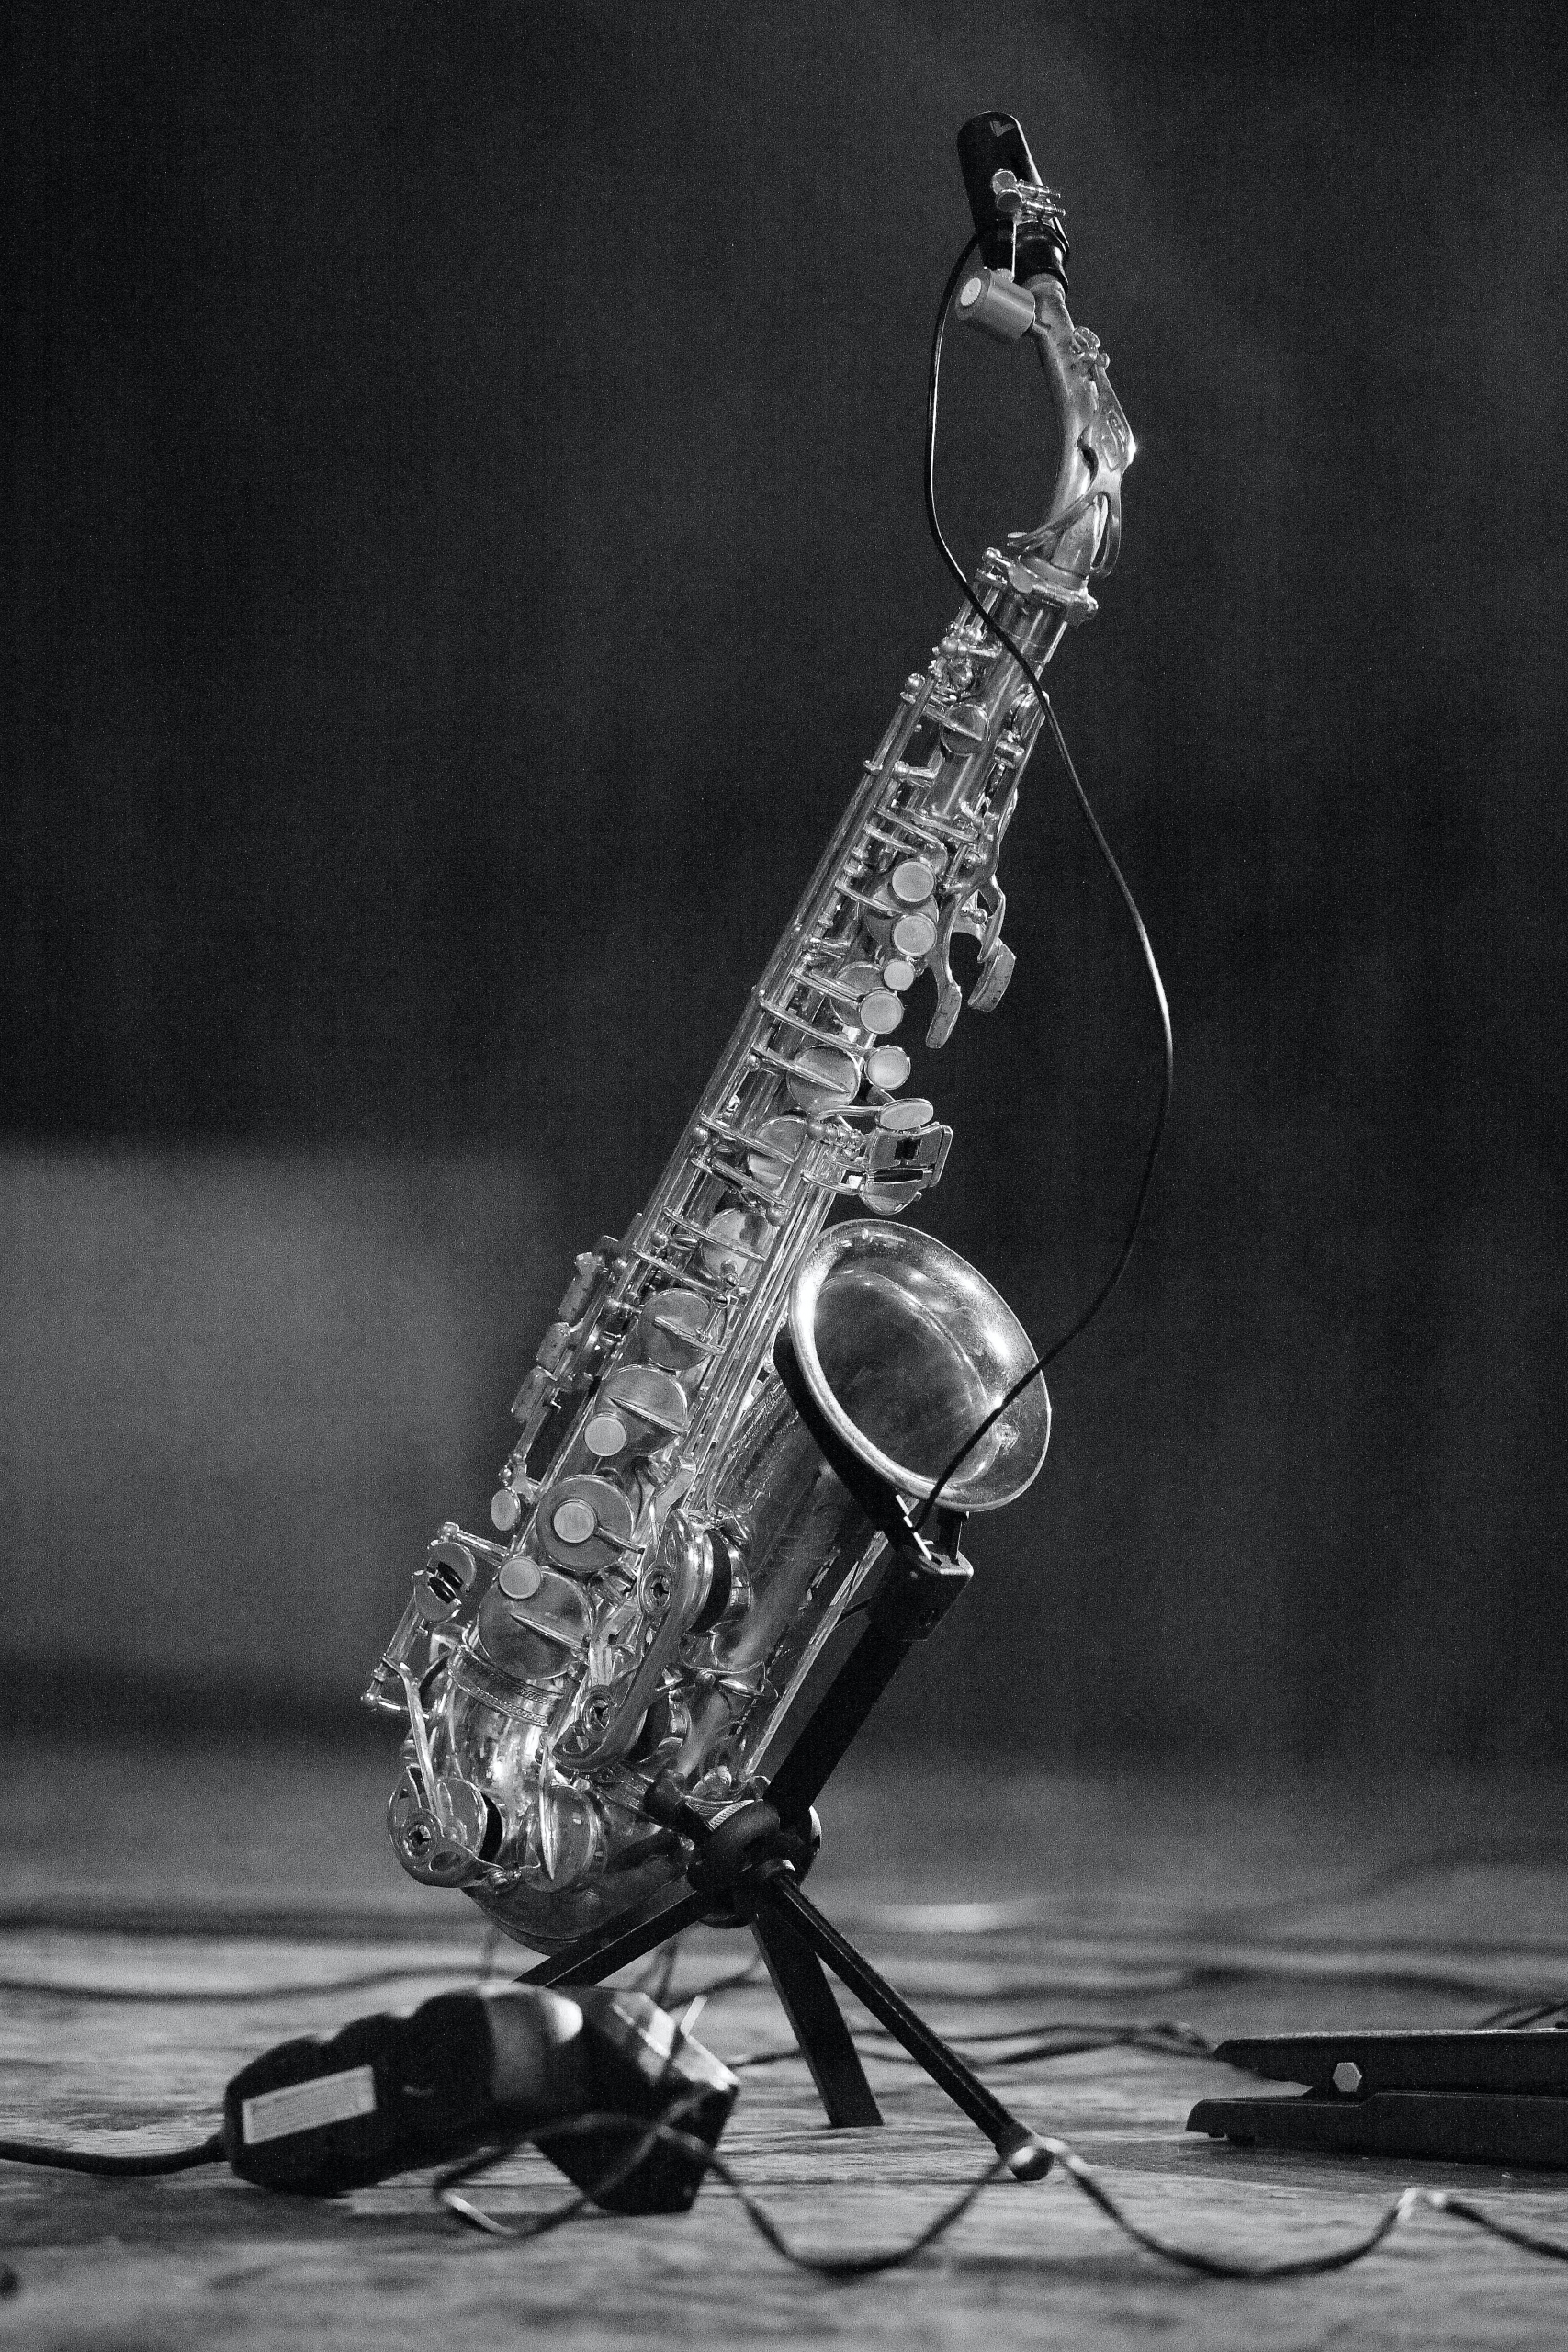 Saxophone in black and white photo on a stand on a stage